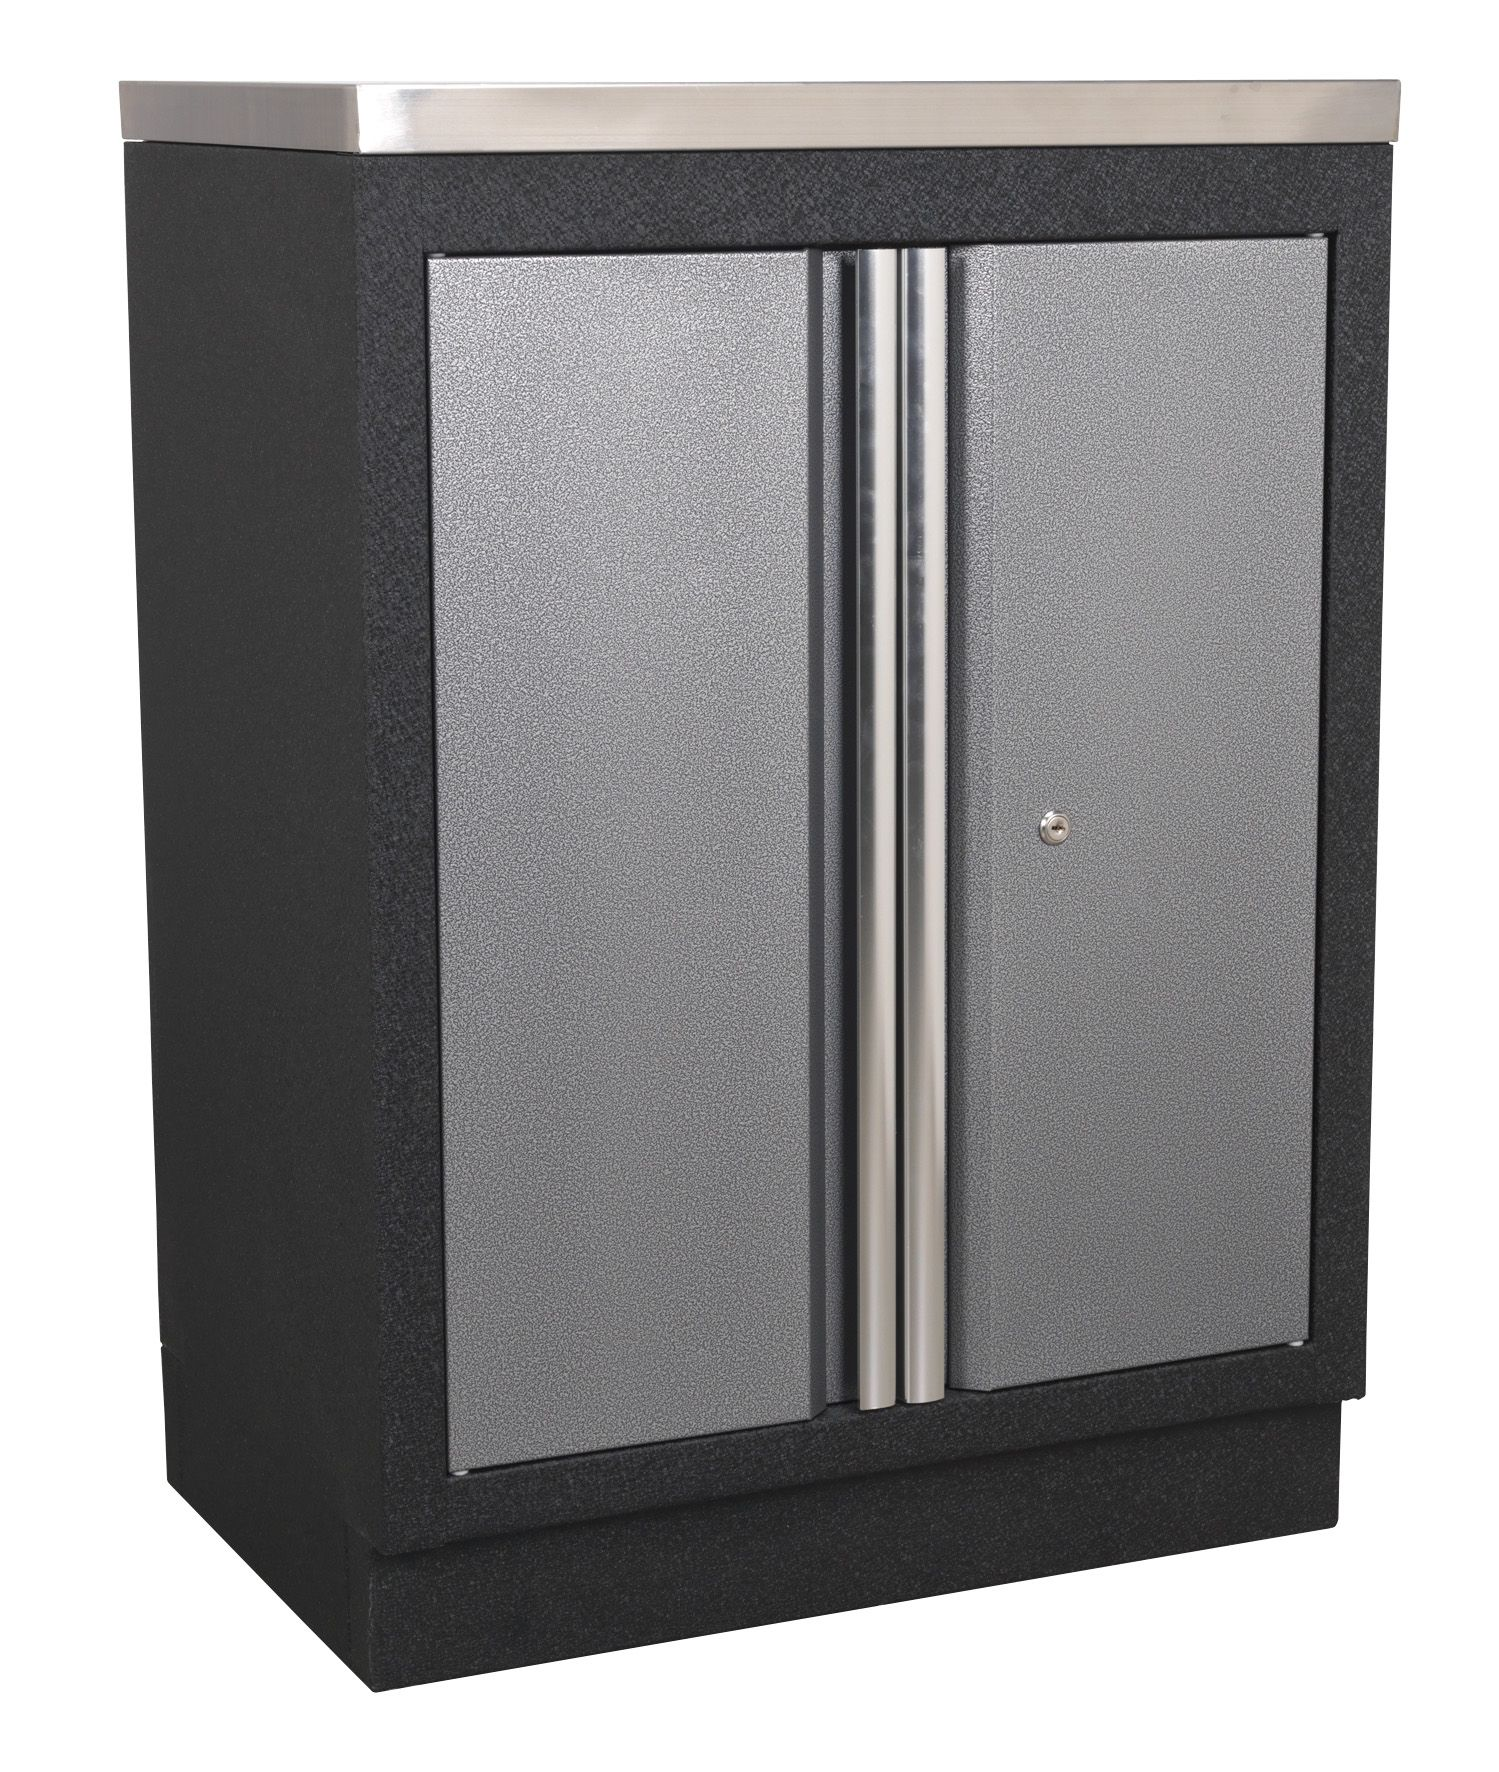 Sealey Superline Pro Modular 2 Door Floor Cabinet 680mm